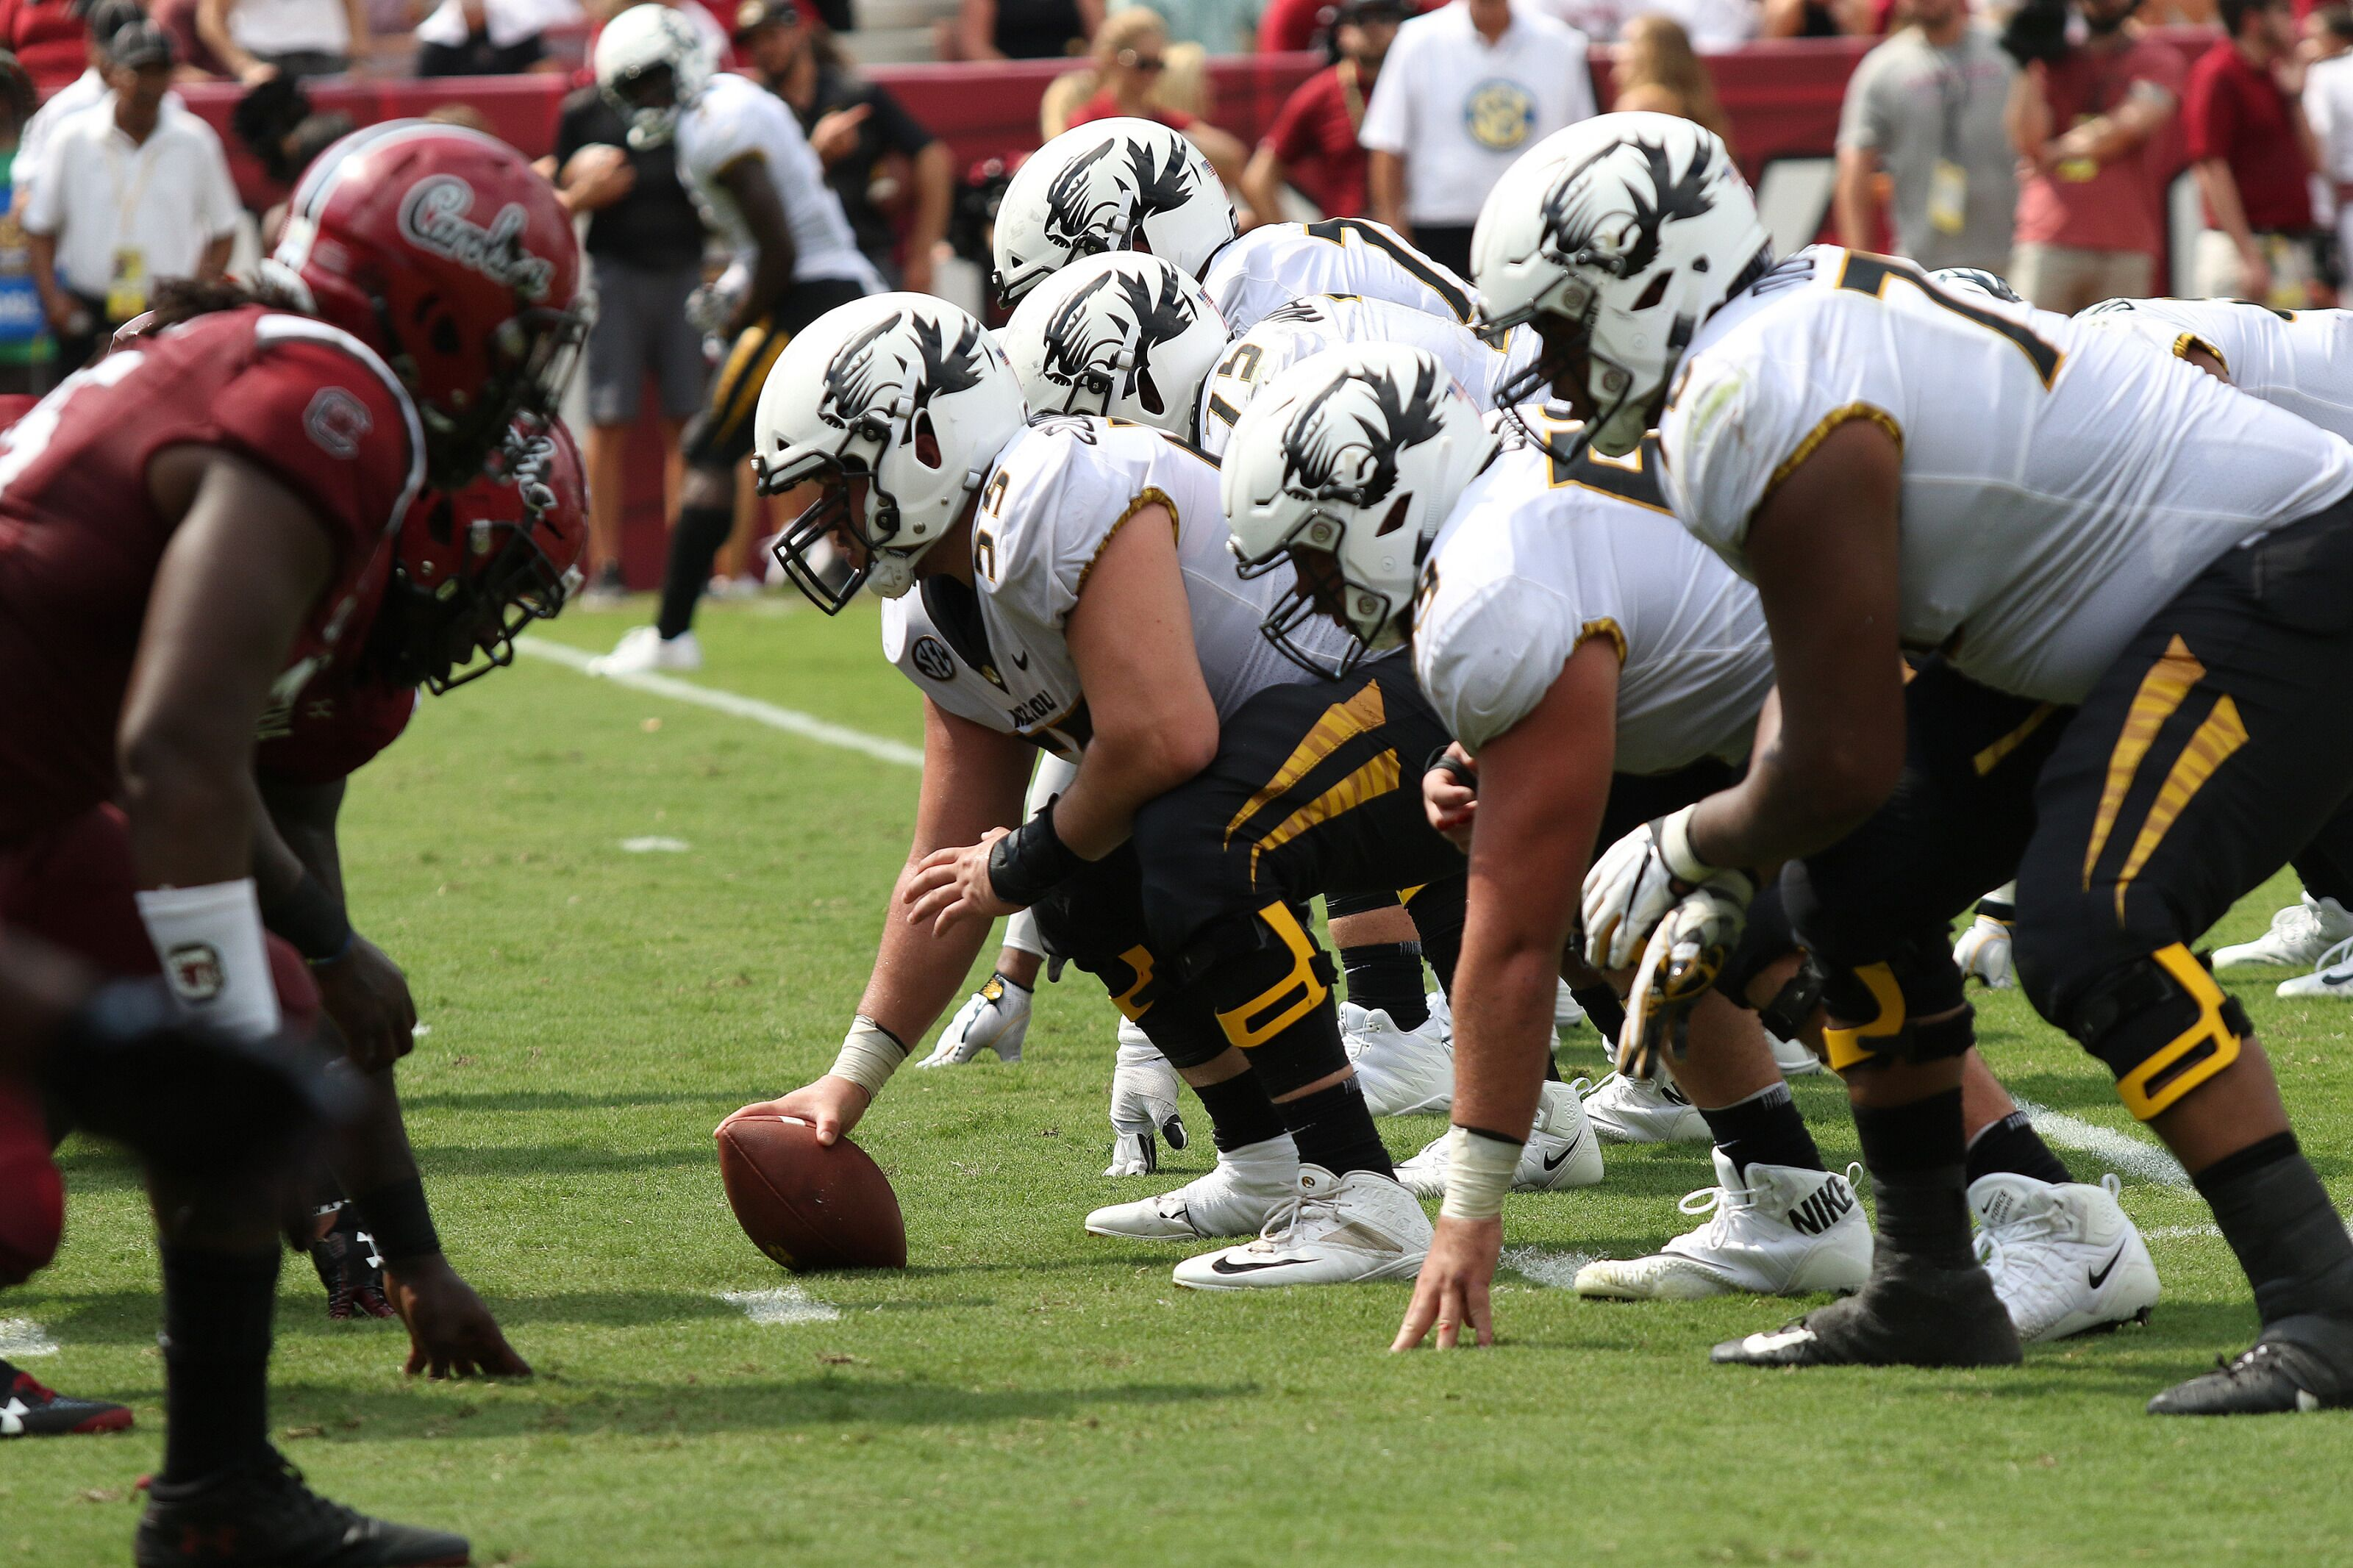 Mizzou Football: South Carolina must-win game for Tigers